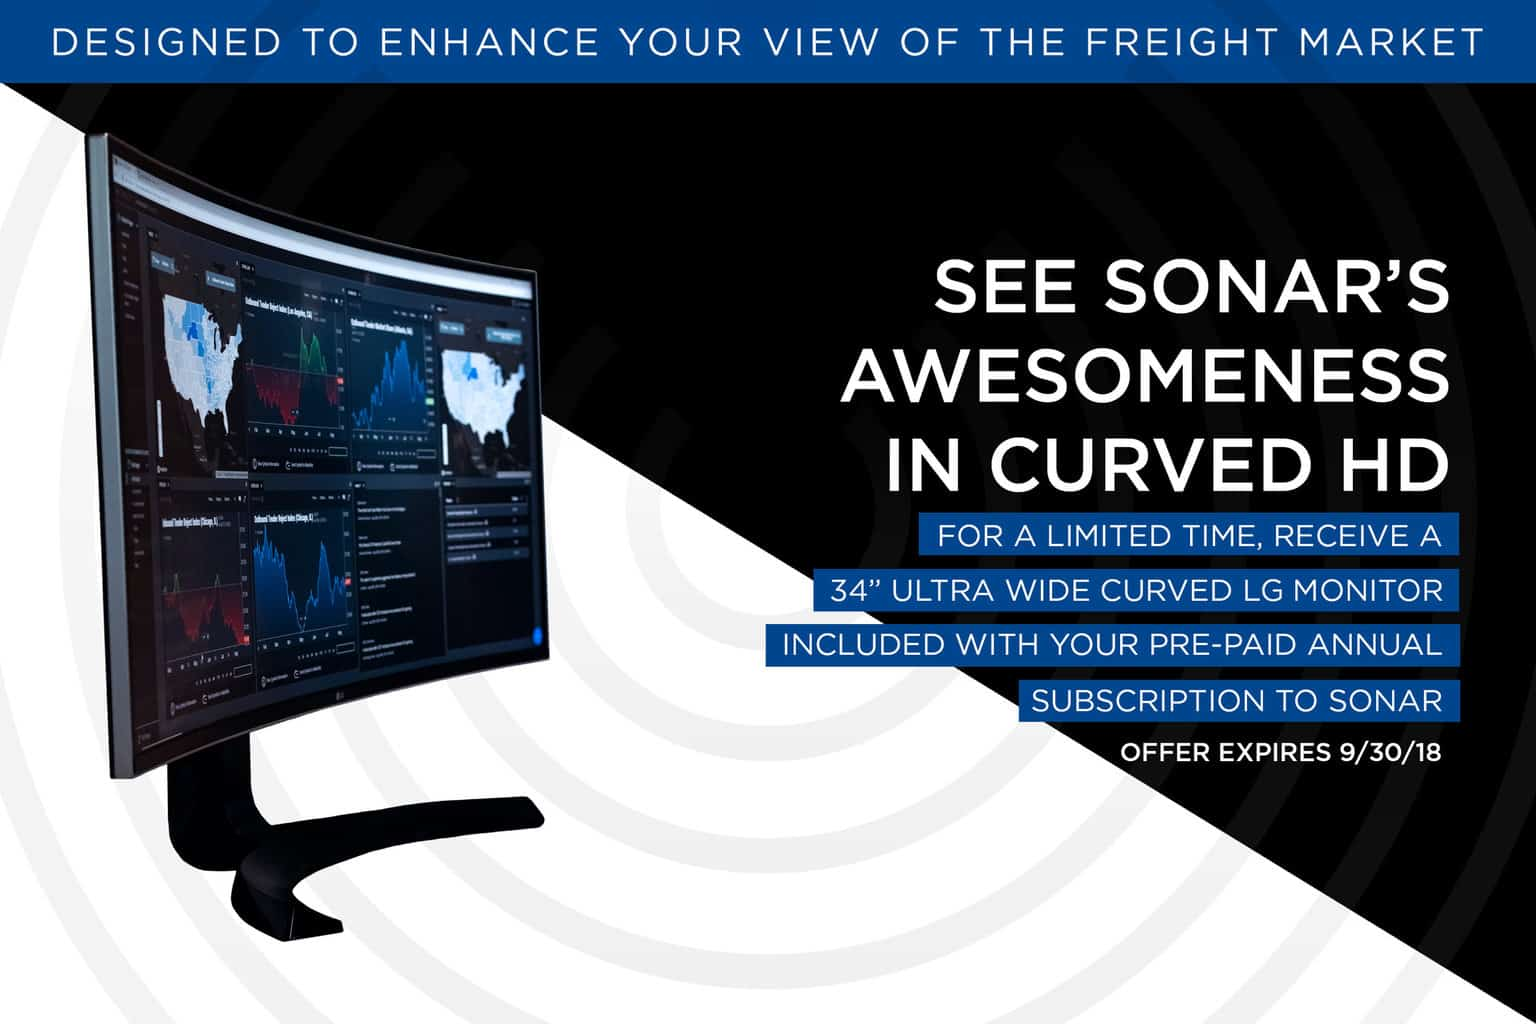 Photo of The freight market is meant for ultra-wide HD